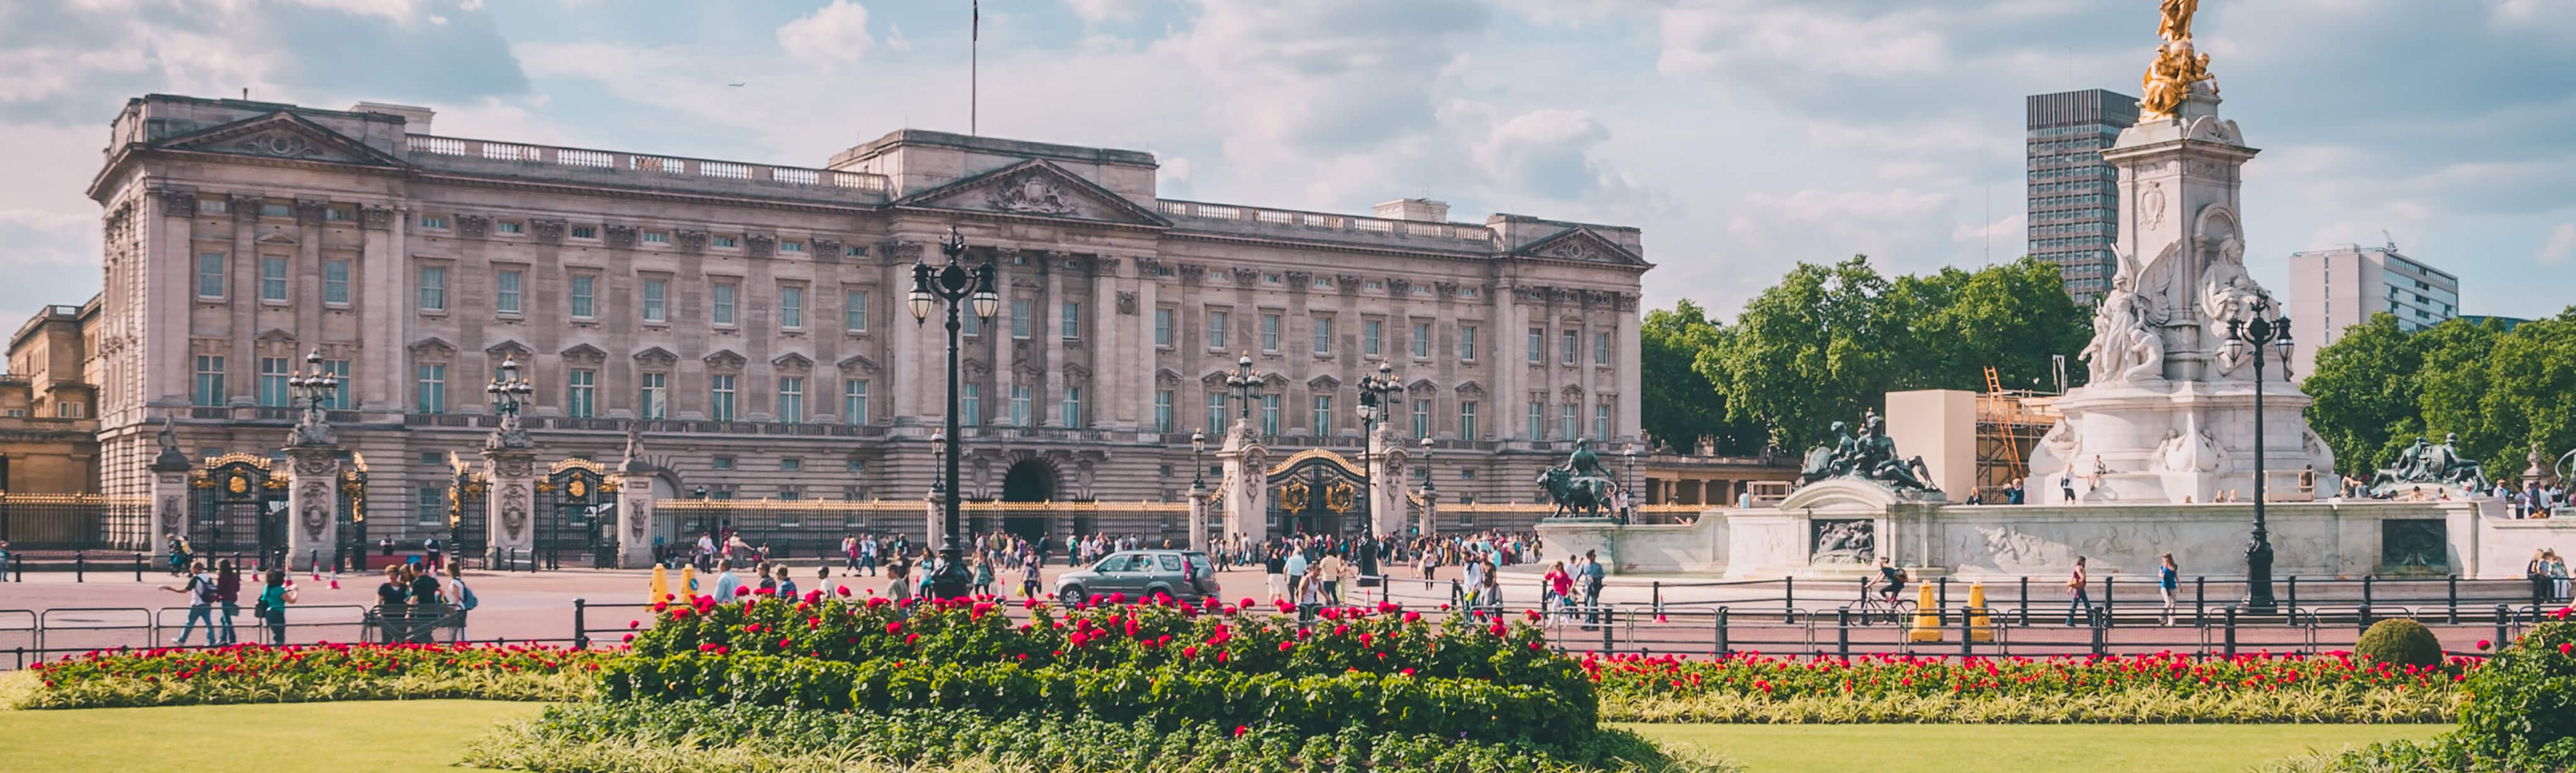 people walking around outside of buckingham palace in london england